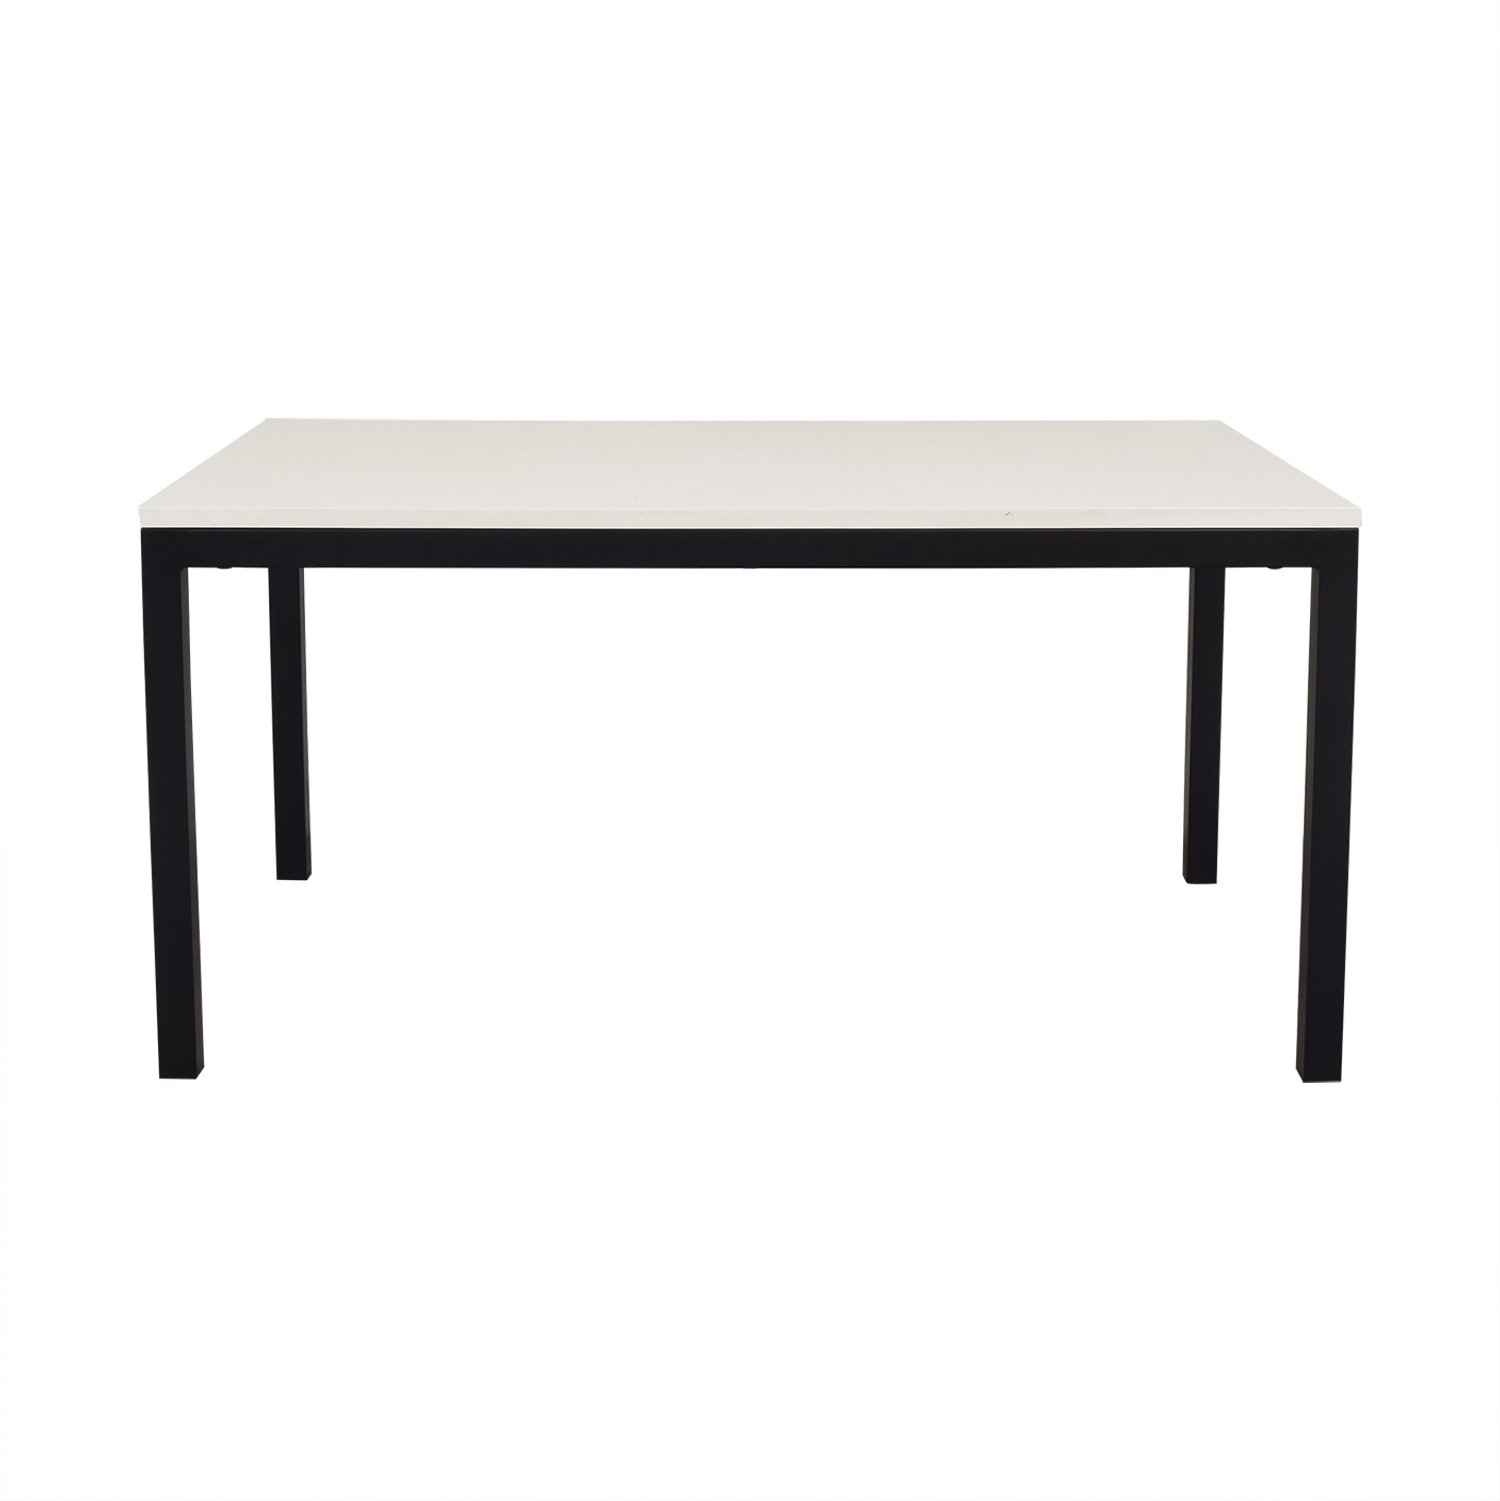 Crate & Barrel Crate & Barrel Parsons Dining Table on sale